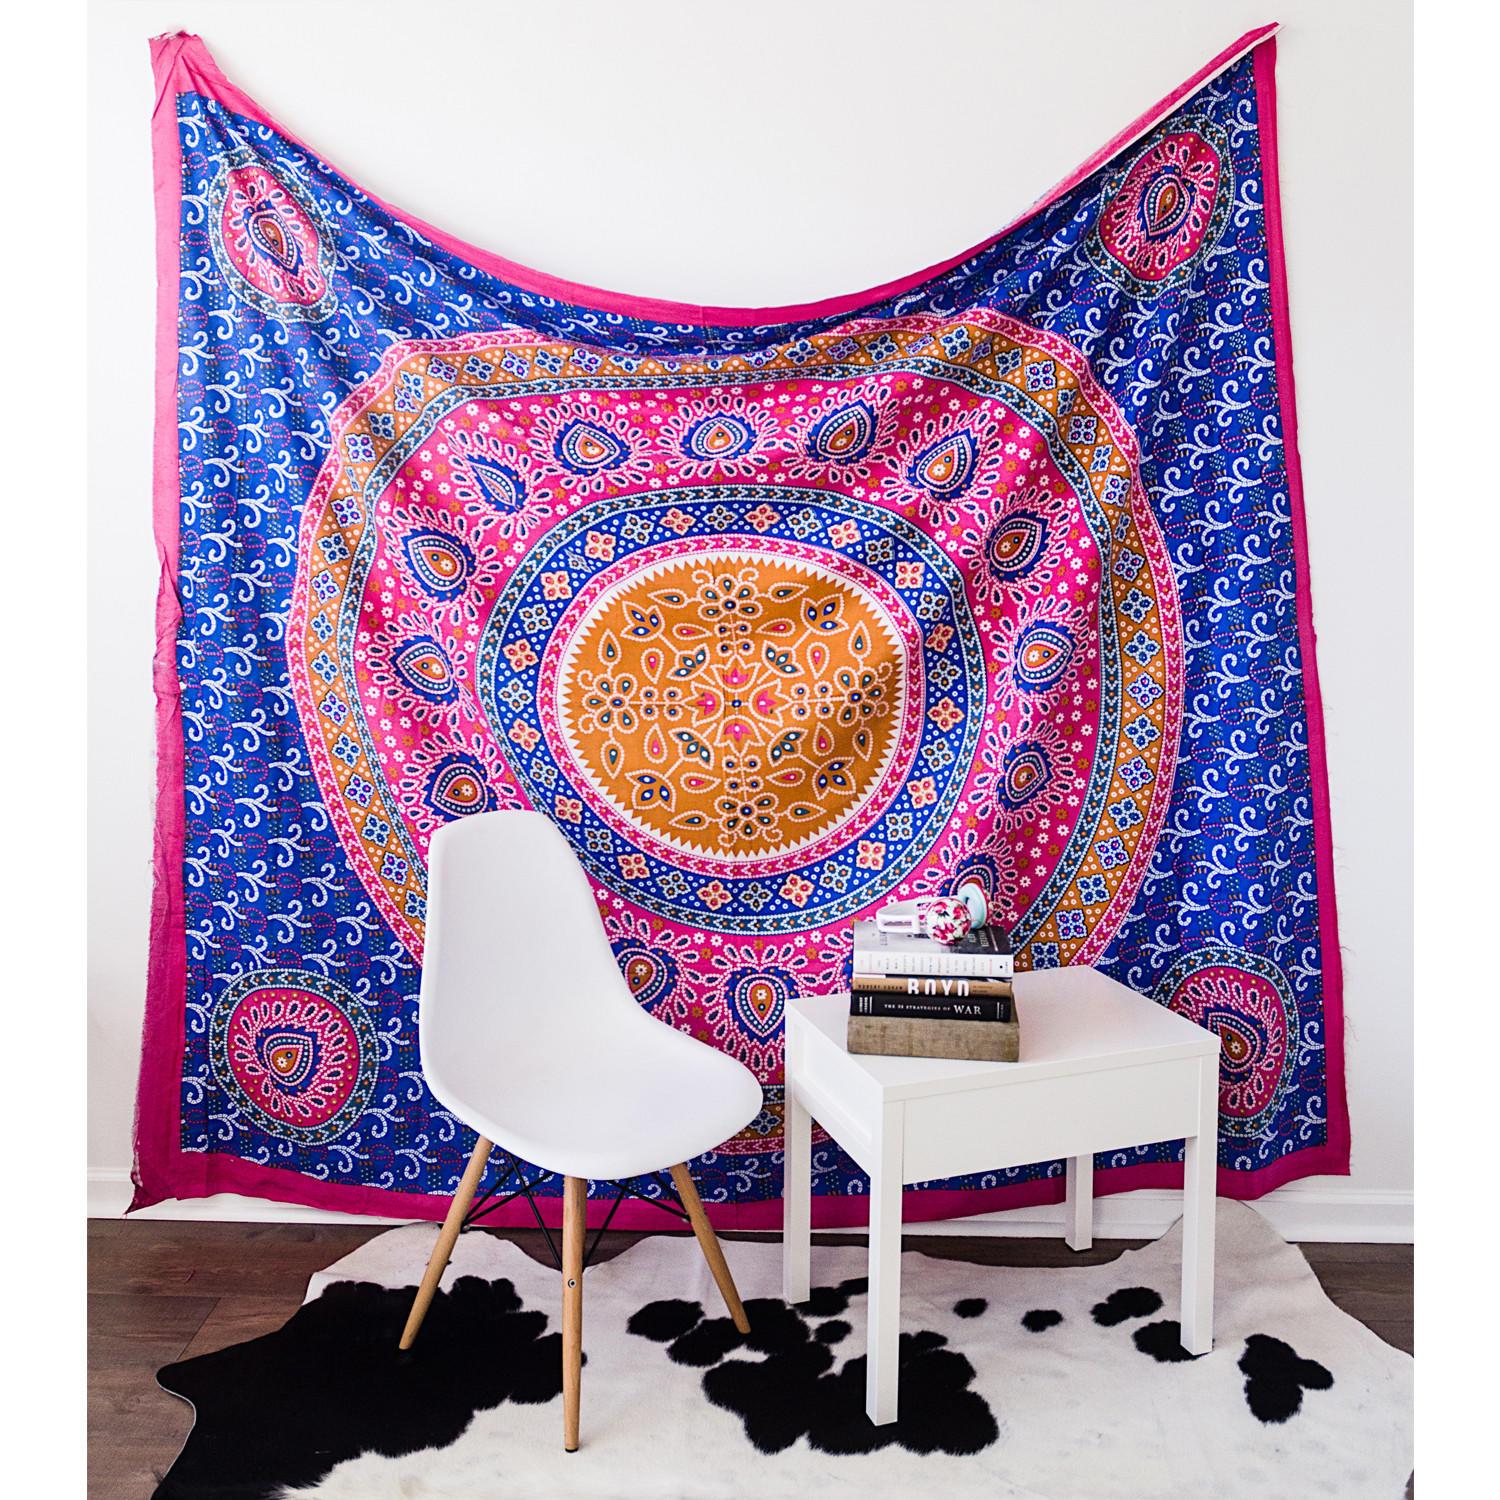 info thinking magical medallion fabric outfitters tapestry everythingbeauty jacket boots mala urban paisley pillow